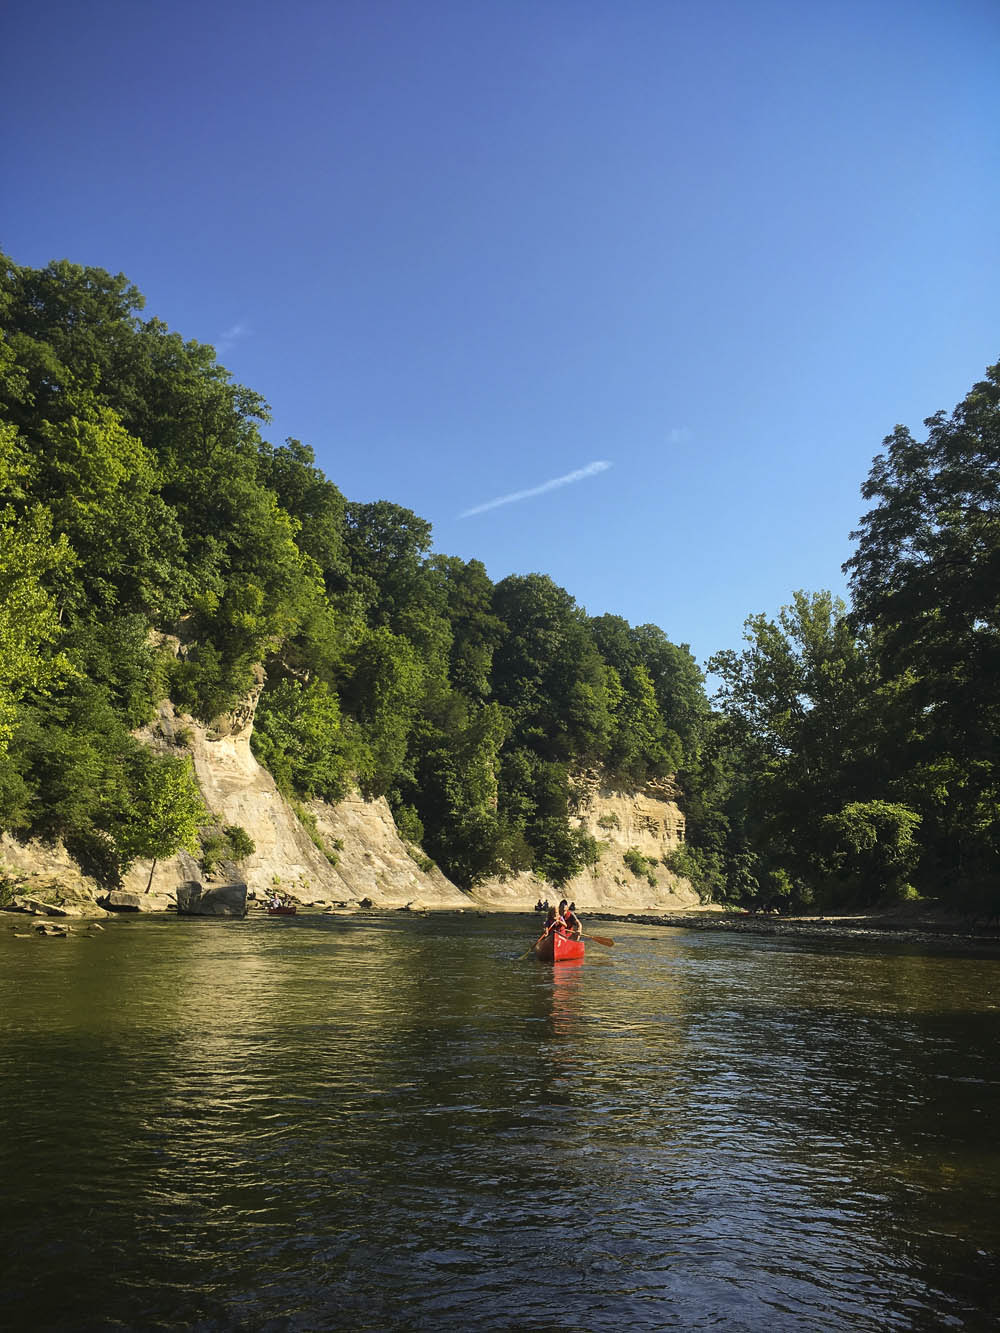 Outdoor Recreation Gone Wild - And Why We Need Friluftsliv